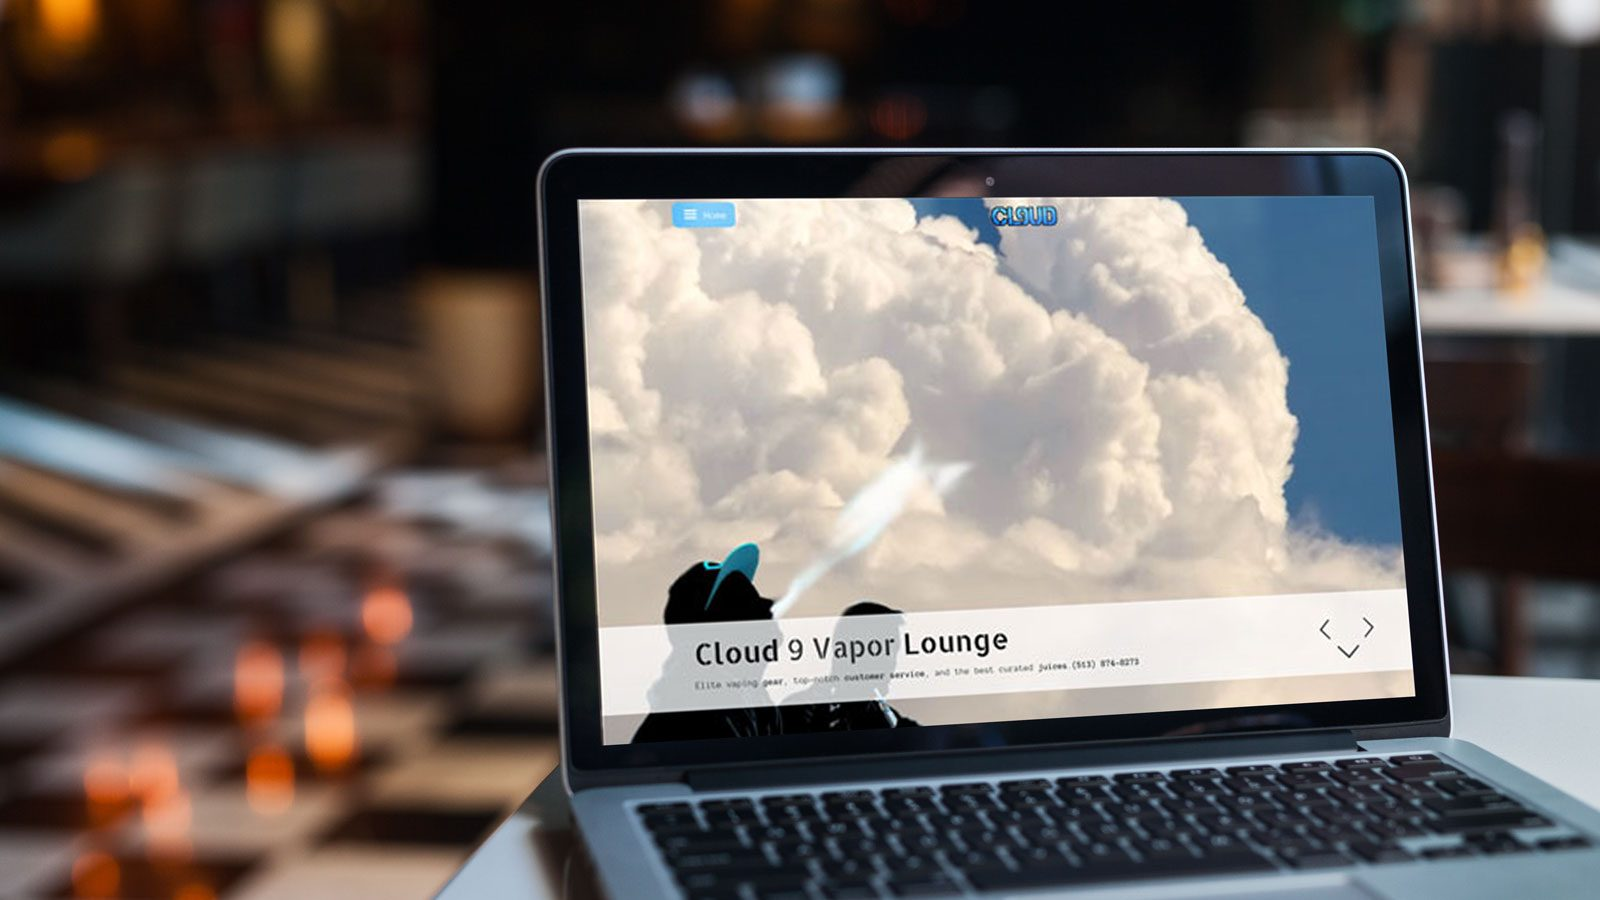 cloud-9-vapor-lounge-responsive-web-design-socially-buzzing